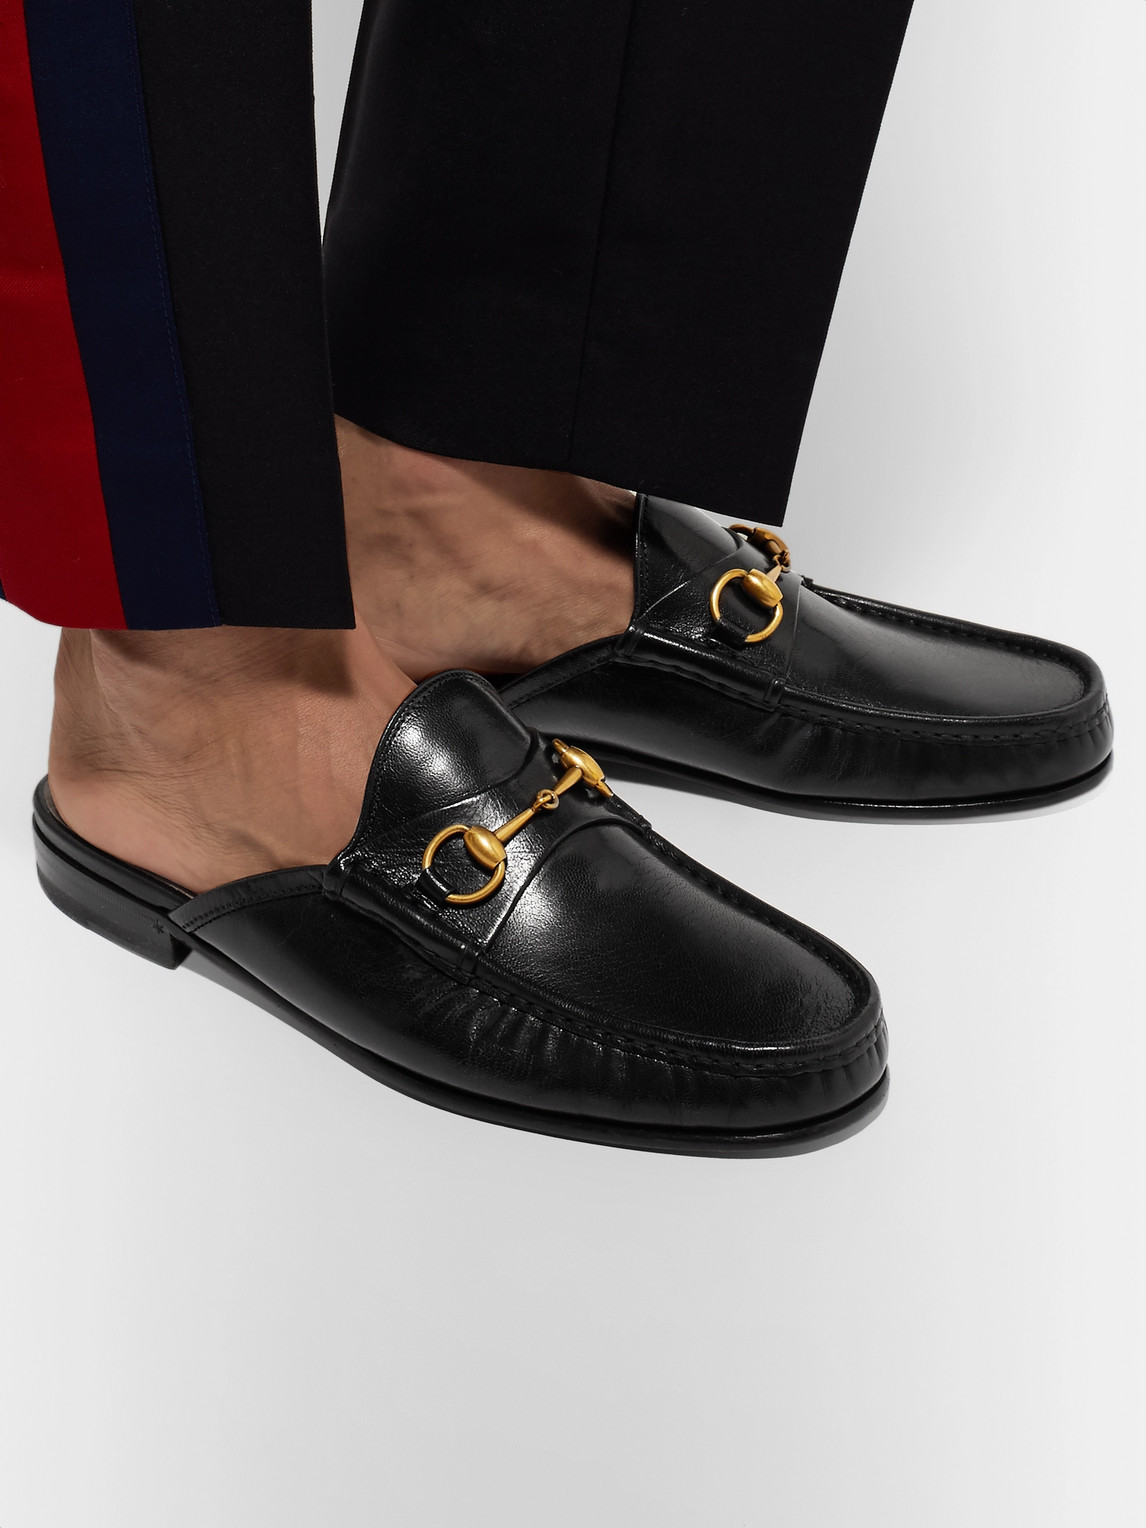 Gucci Sandals OPEN ROOS HORSEBIT LEATHER BACKLESS LOAFERS